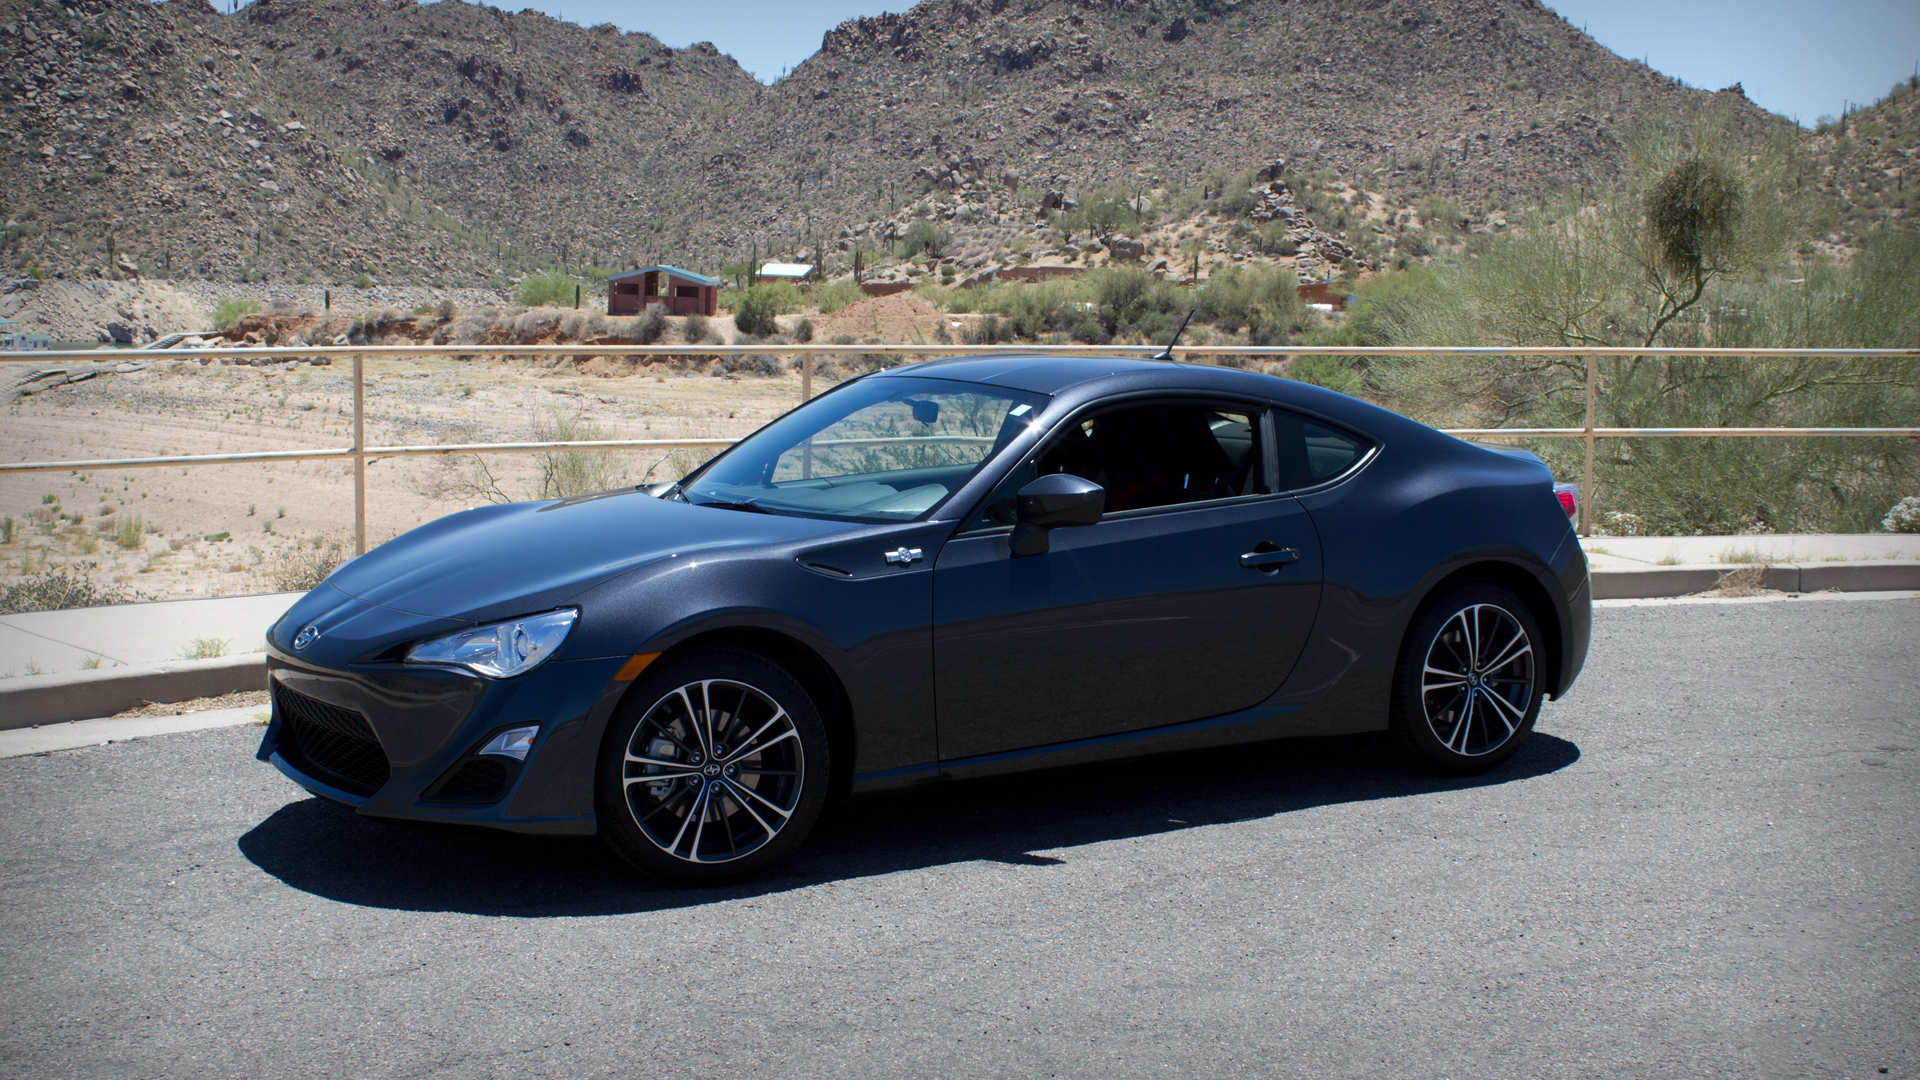 Free Download Made Some Wallpapers Of My Asphalt Frs Scion Fr S